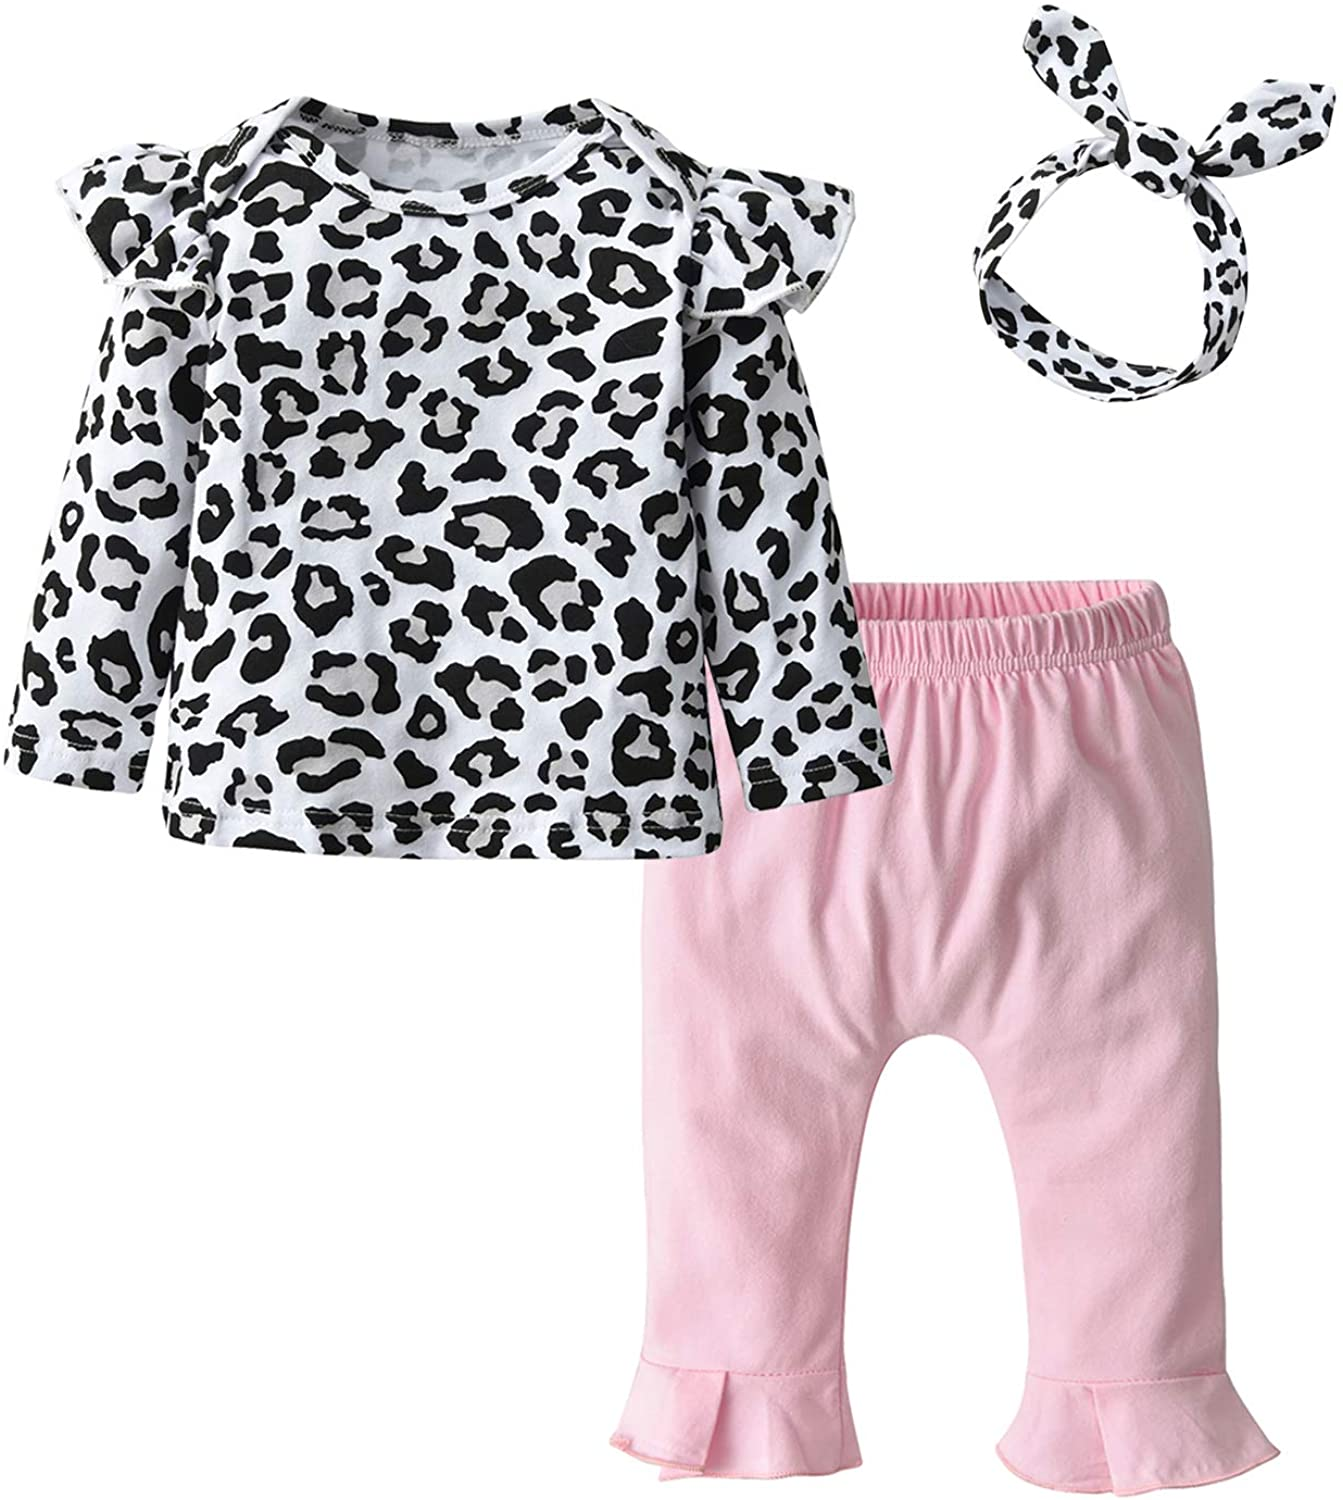 Pig Song Baby Girl Long Sleeve Leopard T-Shirt Tops Pink Pants Headband Outfits Set (6-9 Months)